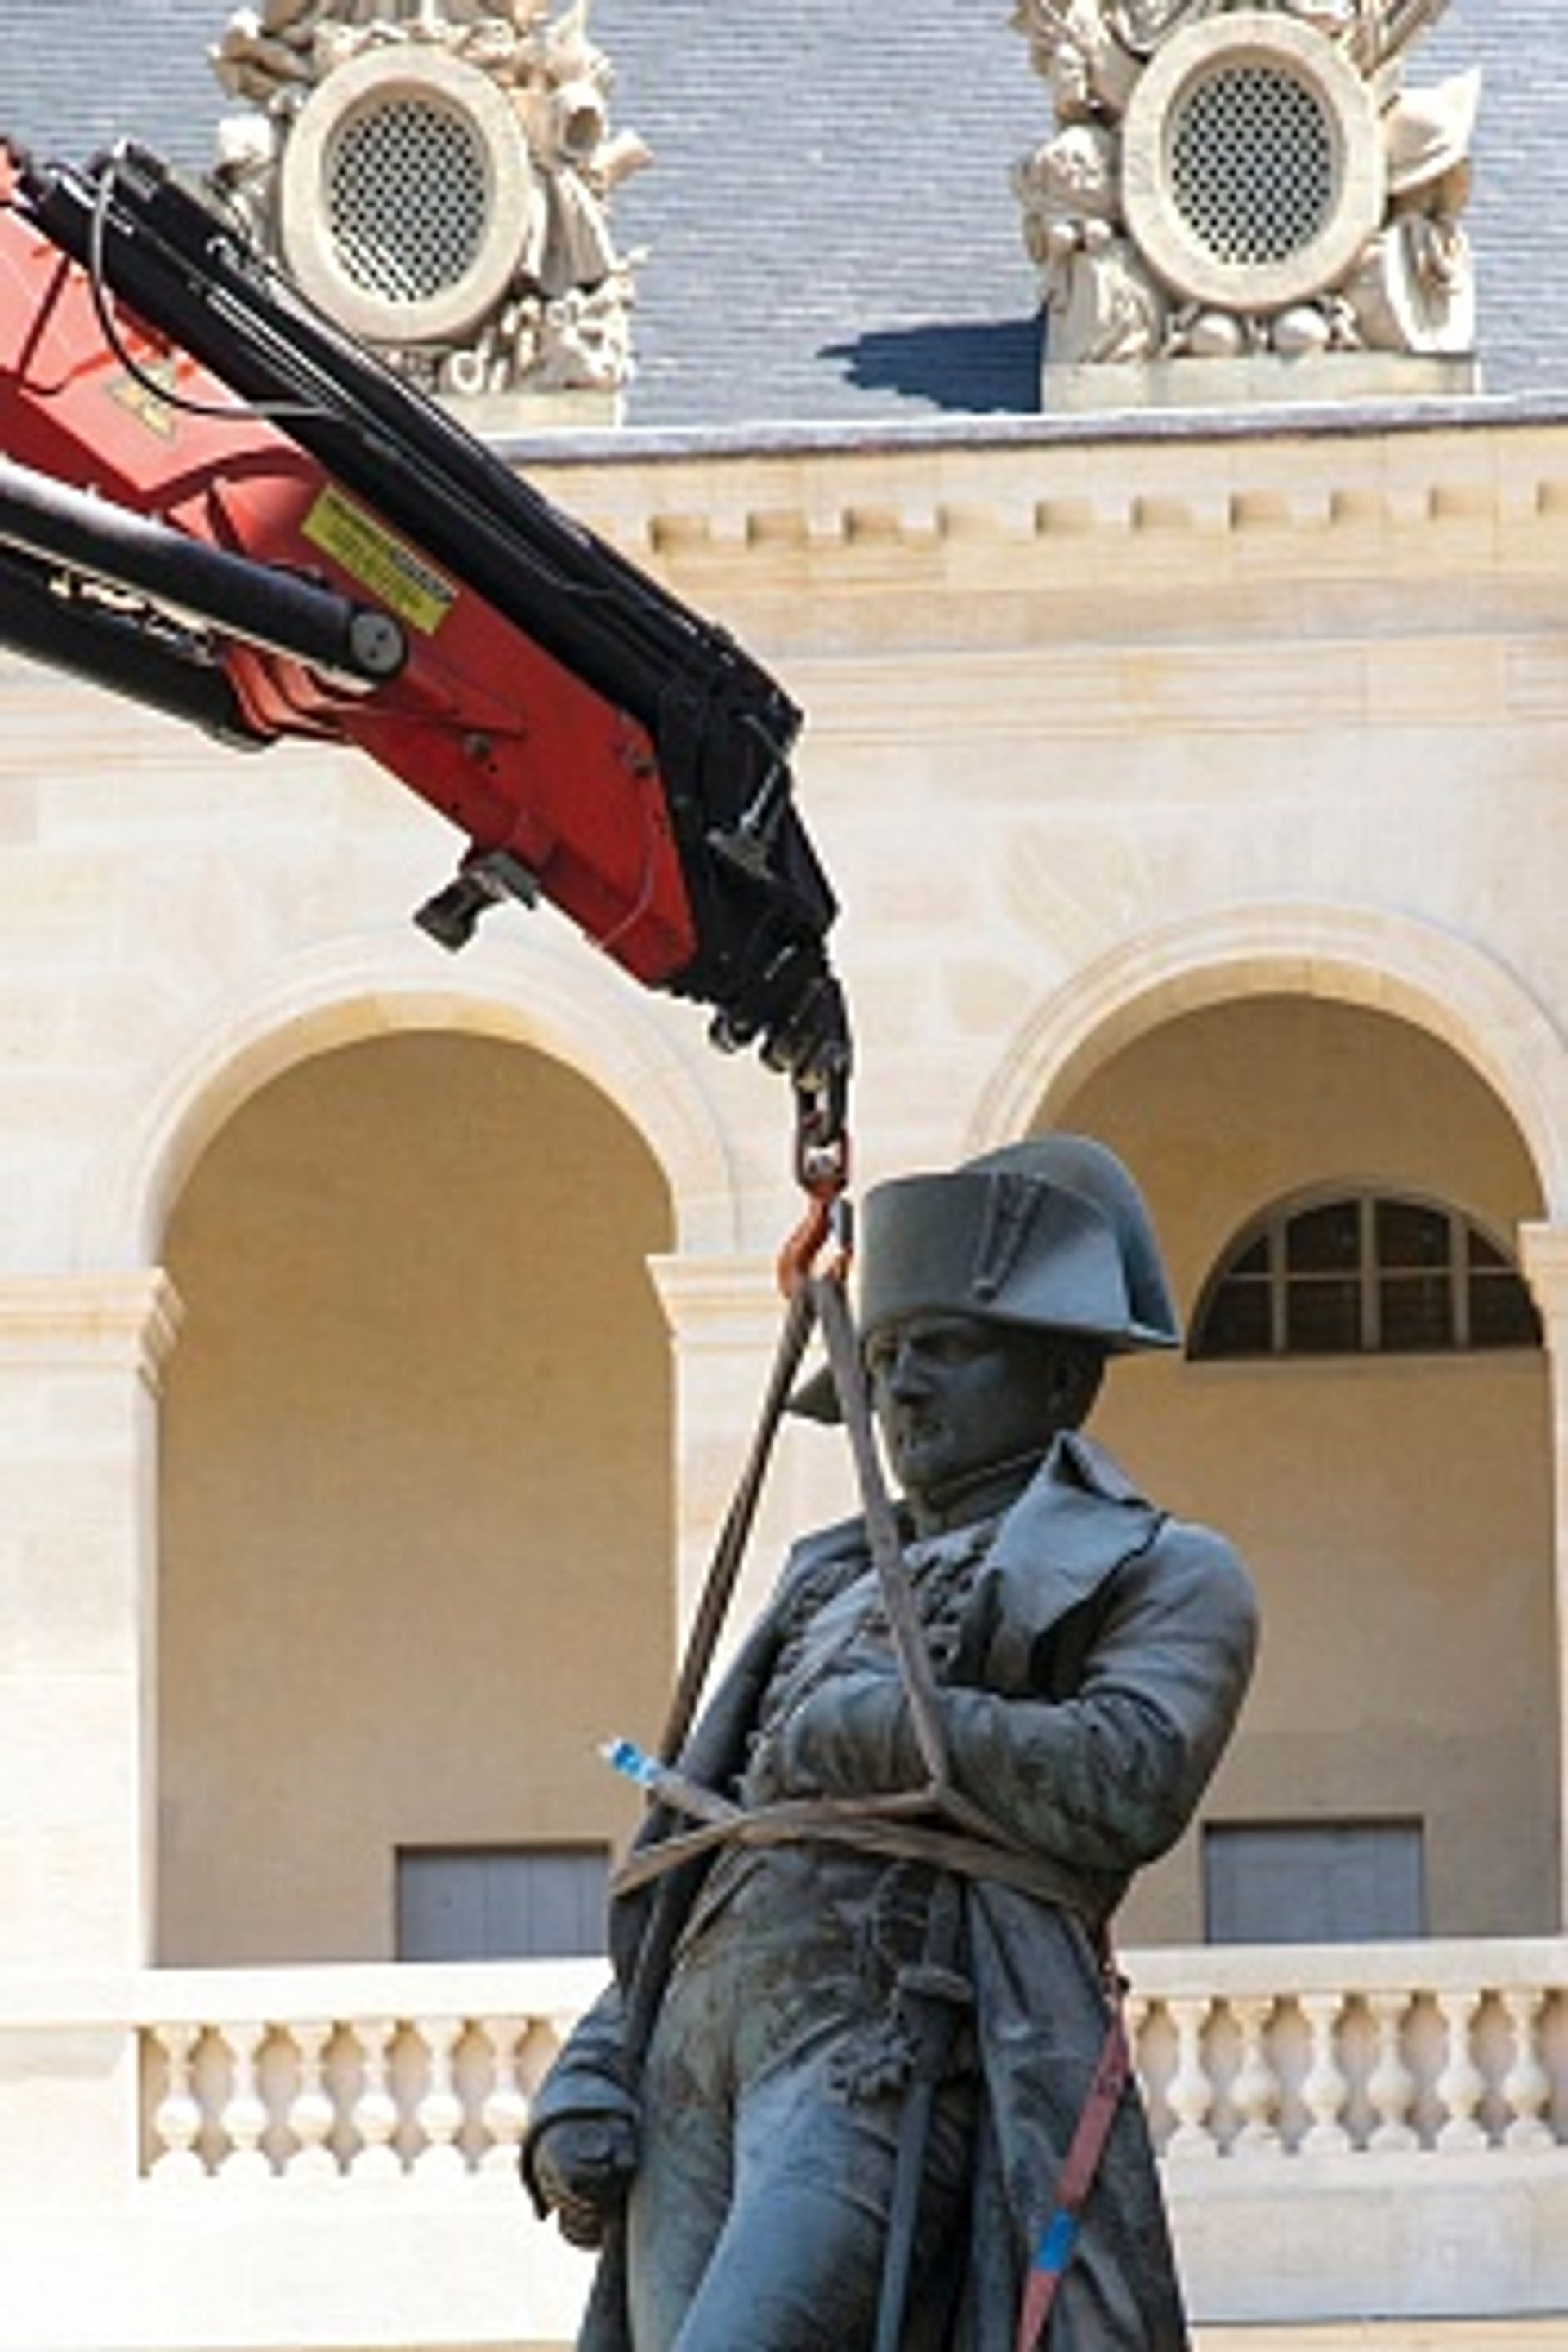 Return from exile: the statue (1833) by Charles Émile Seurre is back at Les Invalides Photo: © RMN-GP/Anne-Sylvaine Marre-Noël